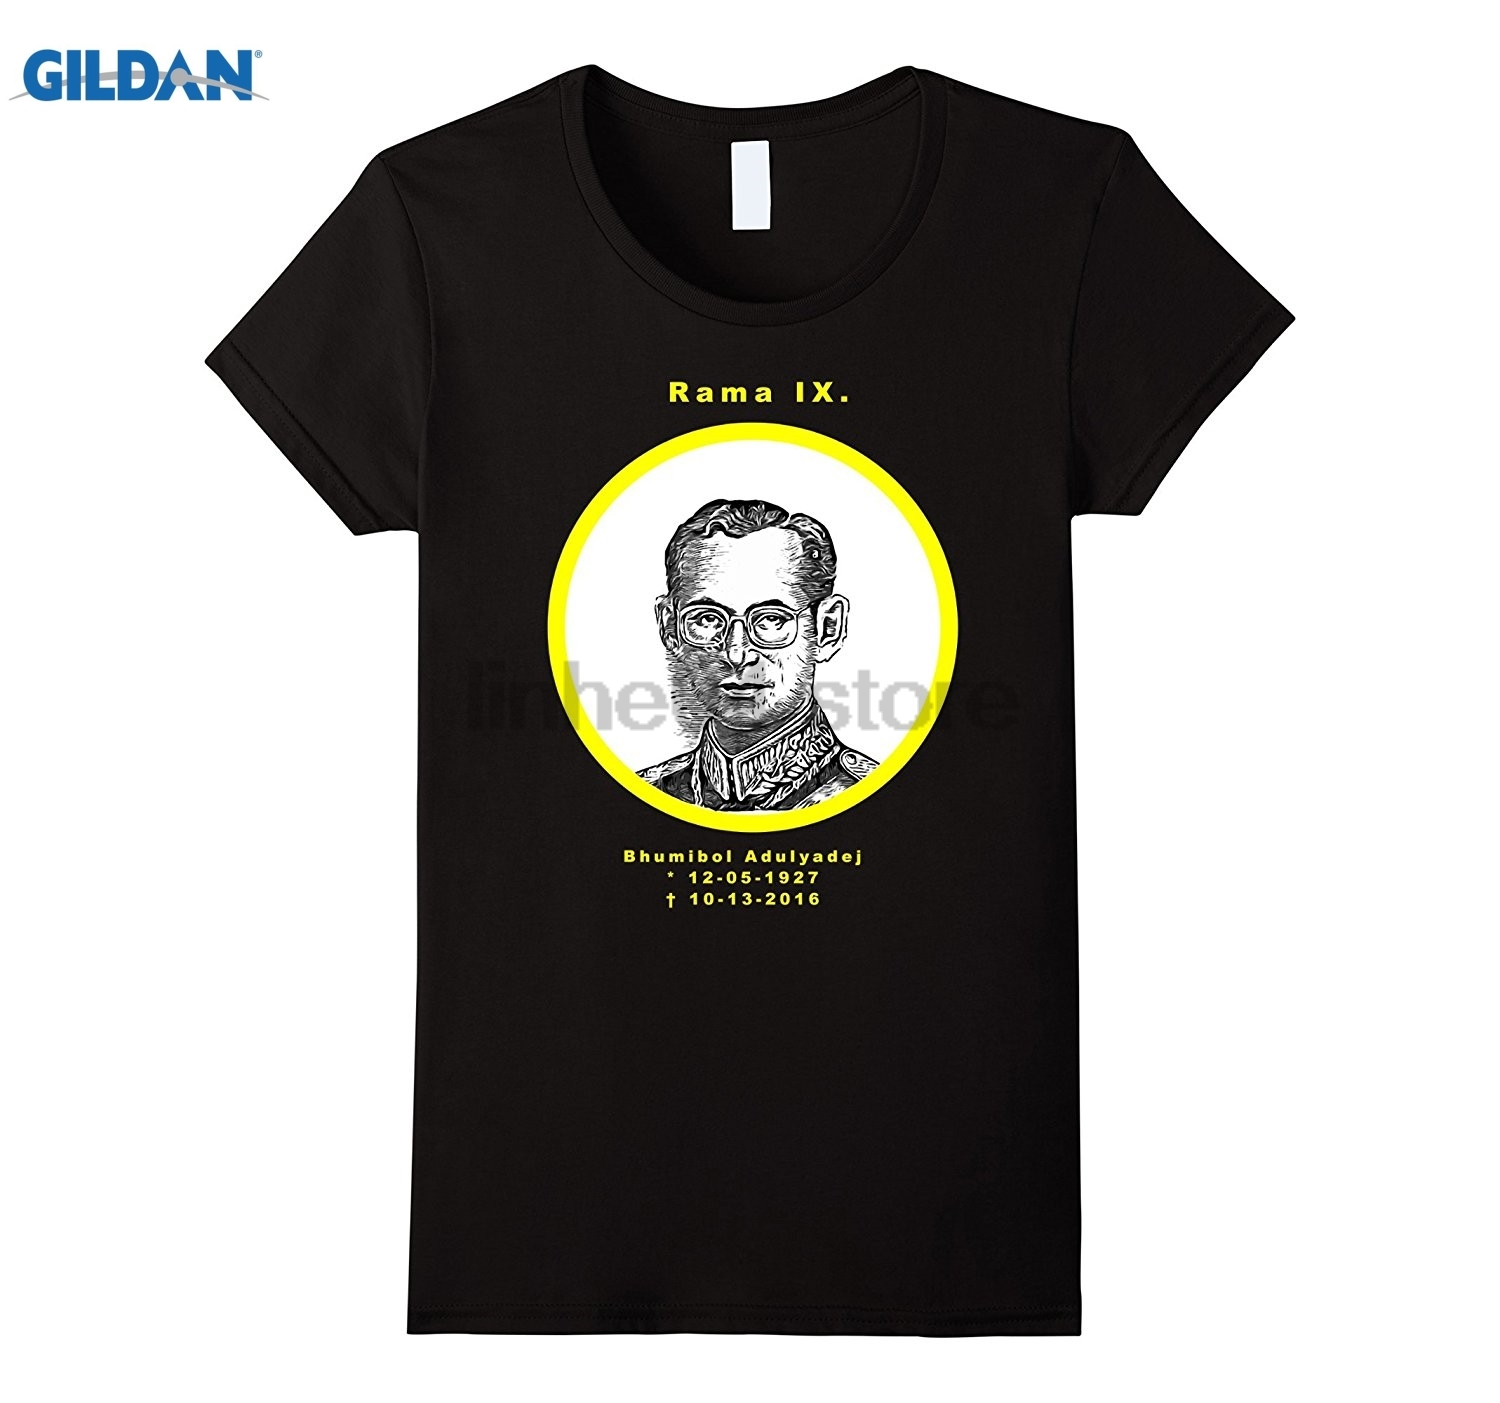 GILDAN Rama IX. Bhumibol Adulyadej Thailand King is dead T-Shirt glasses Womens T-shirt ...